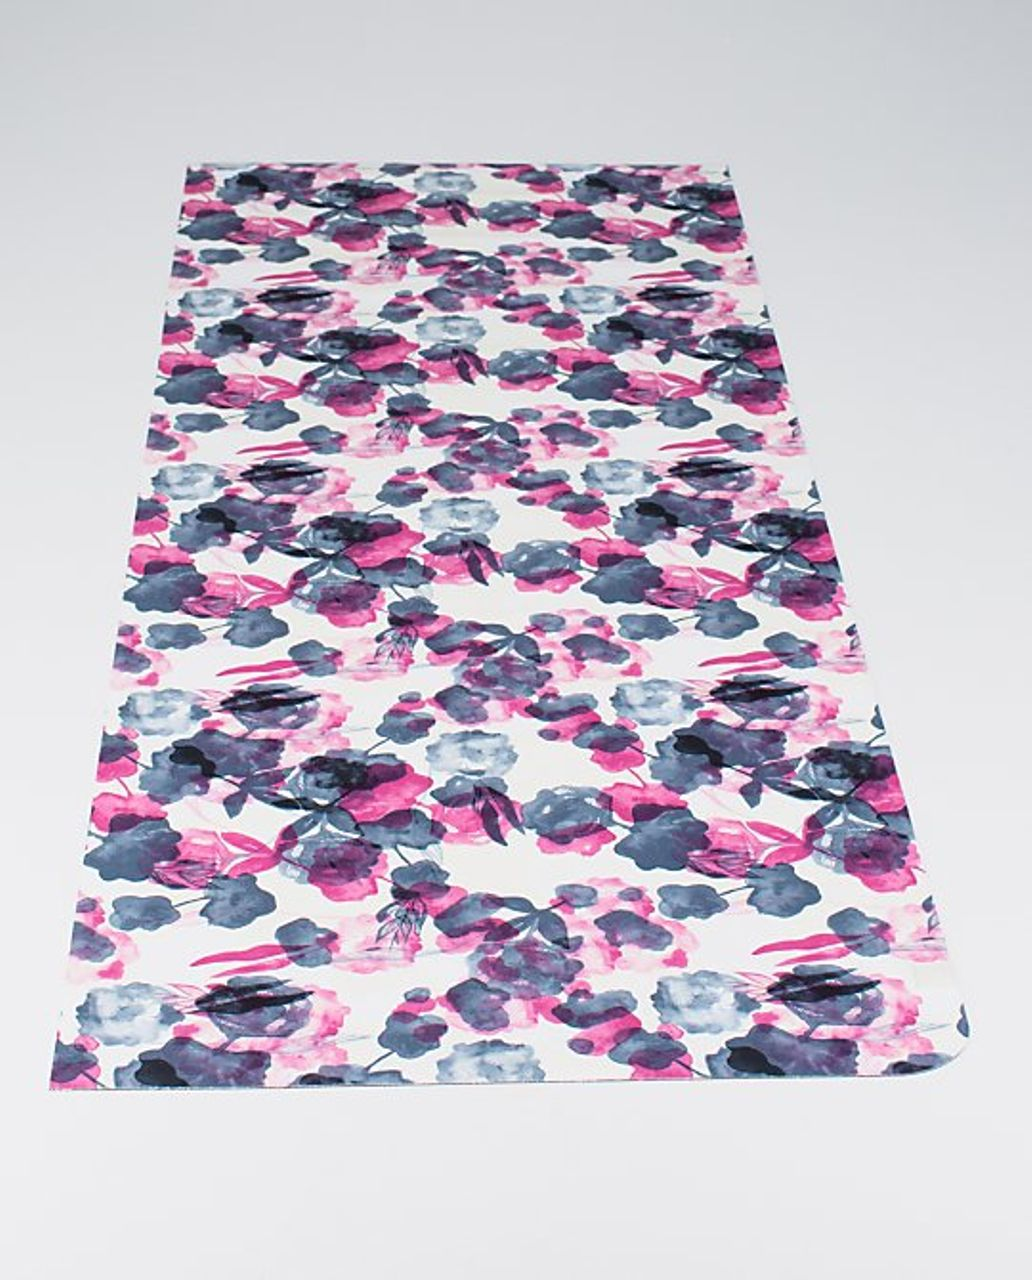 e869a51968 Lululemon The Hot (Towel) Mat - Inky Floral Ghost Inkwell Bumble Berry /  Inkwell